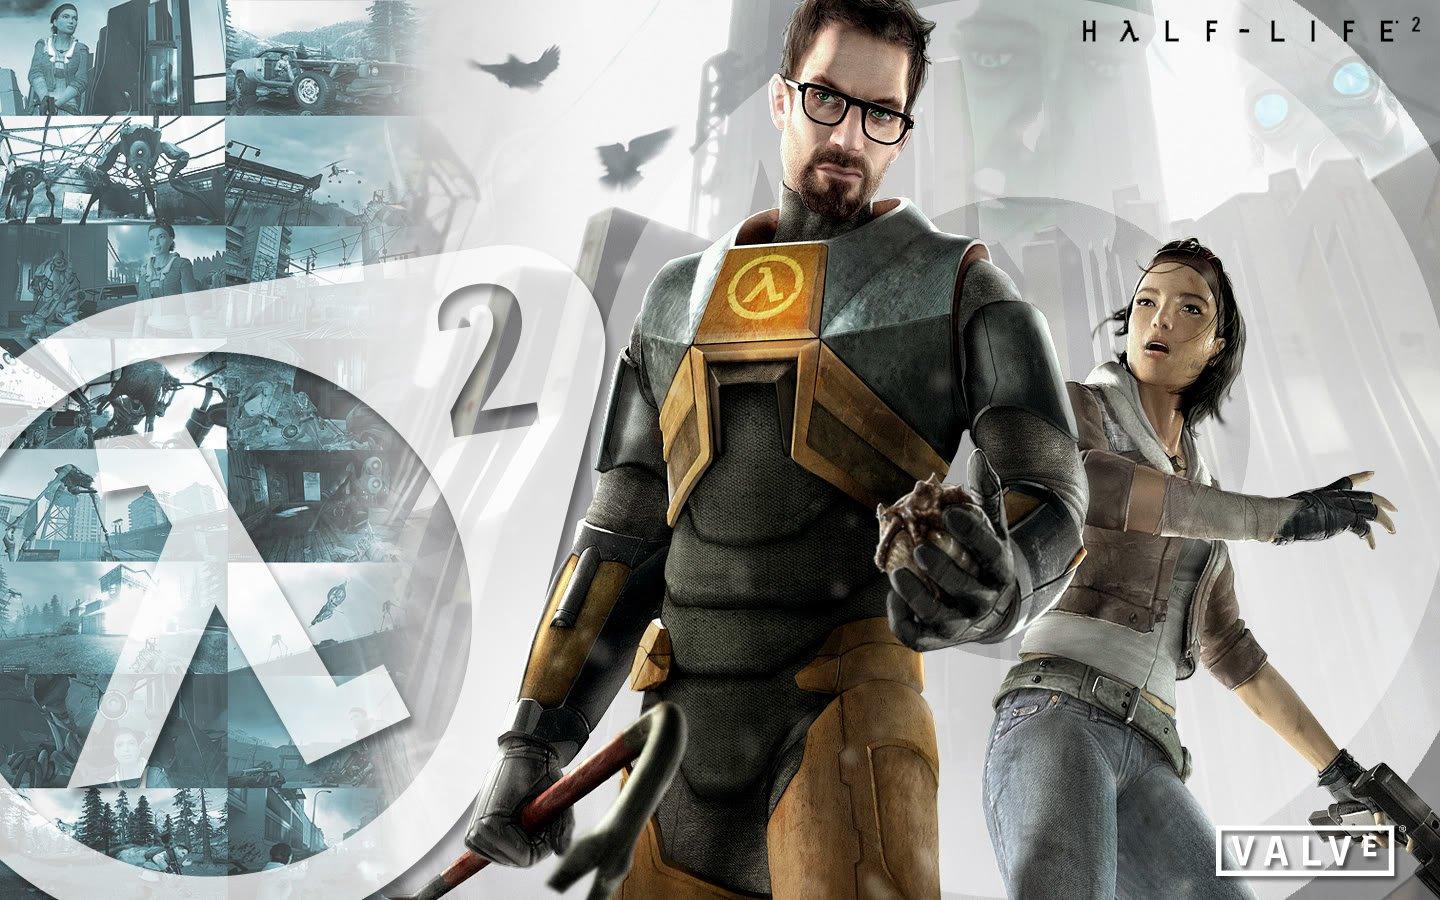 Half Life 2 Wallpaper and Background Image 1440x900 ID586163 1440x900